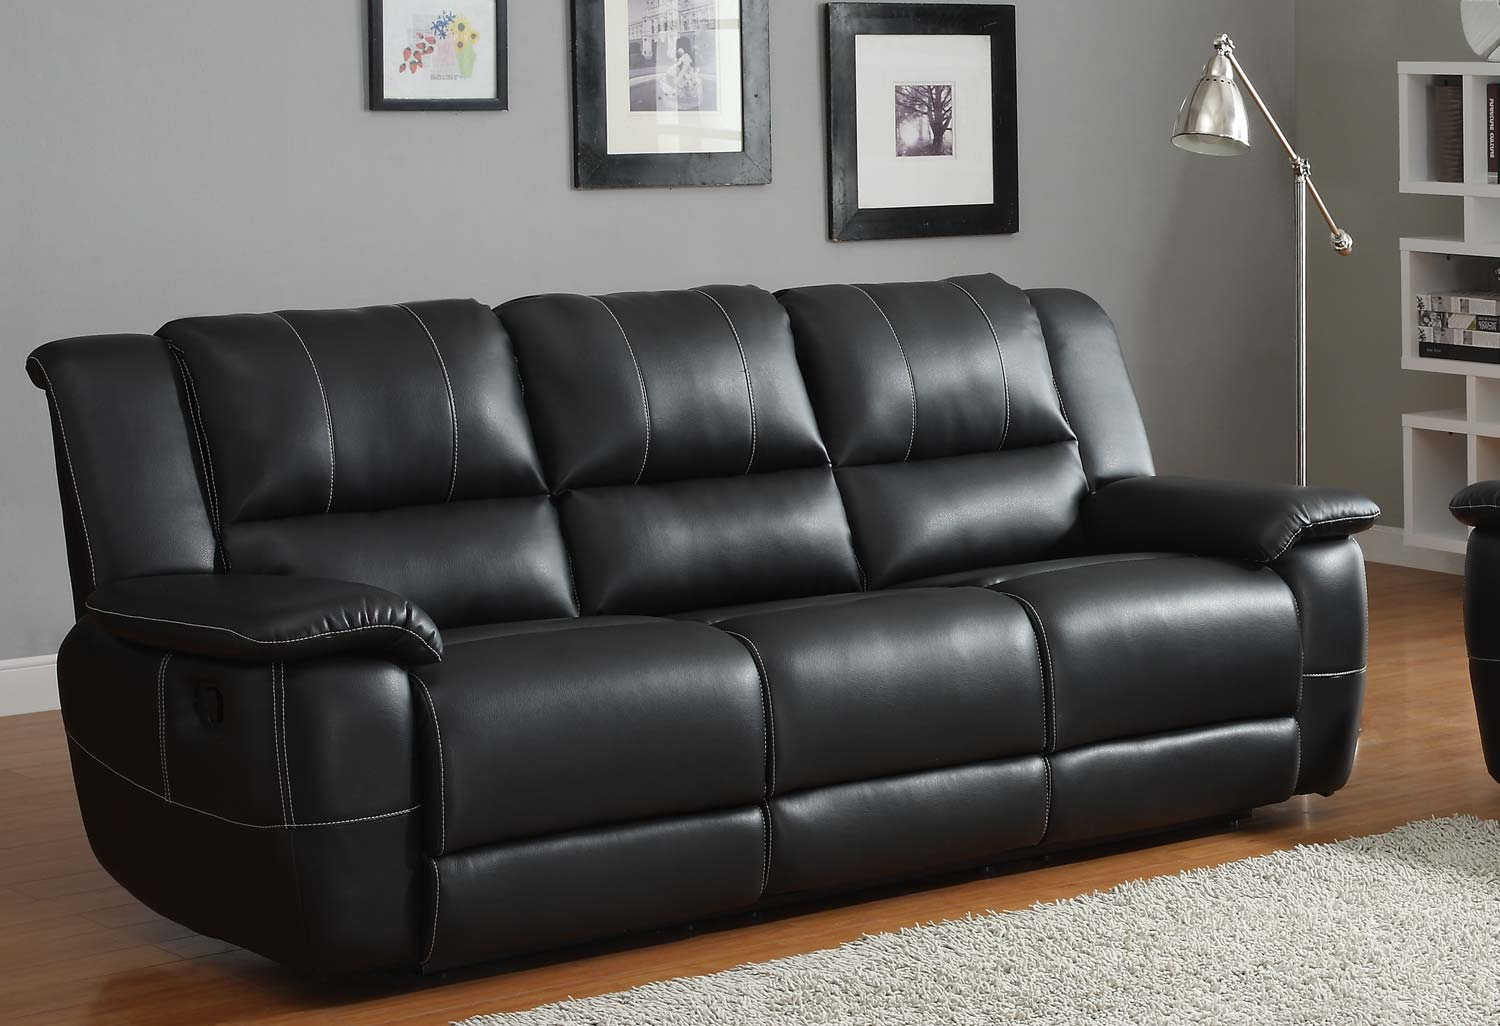 9778blk 3 cantrell sofa double recliner black bonded leather match